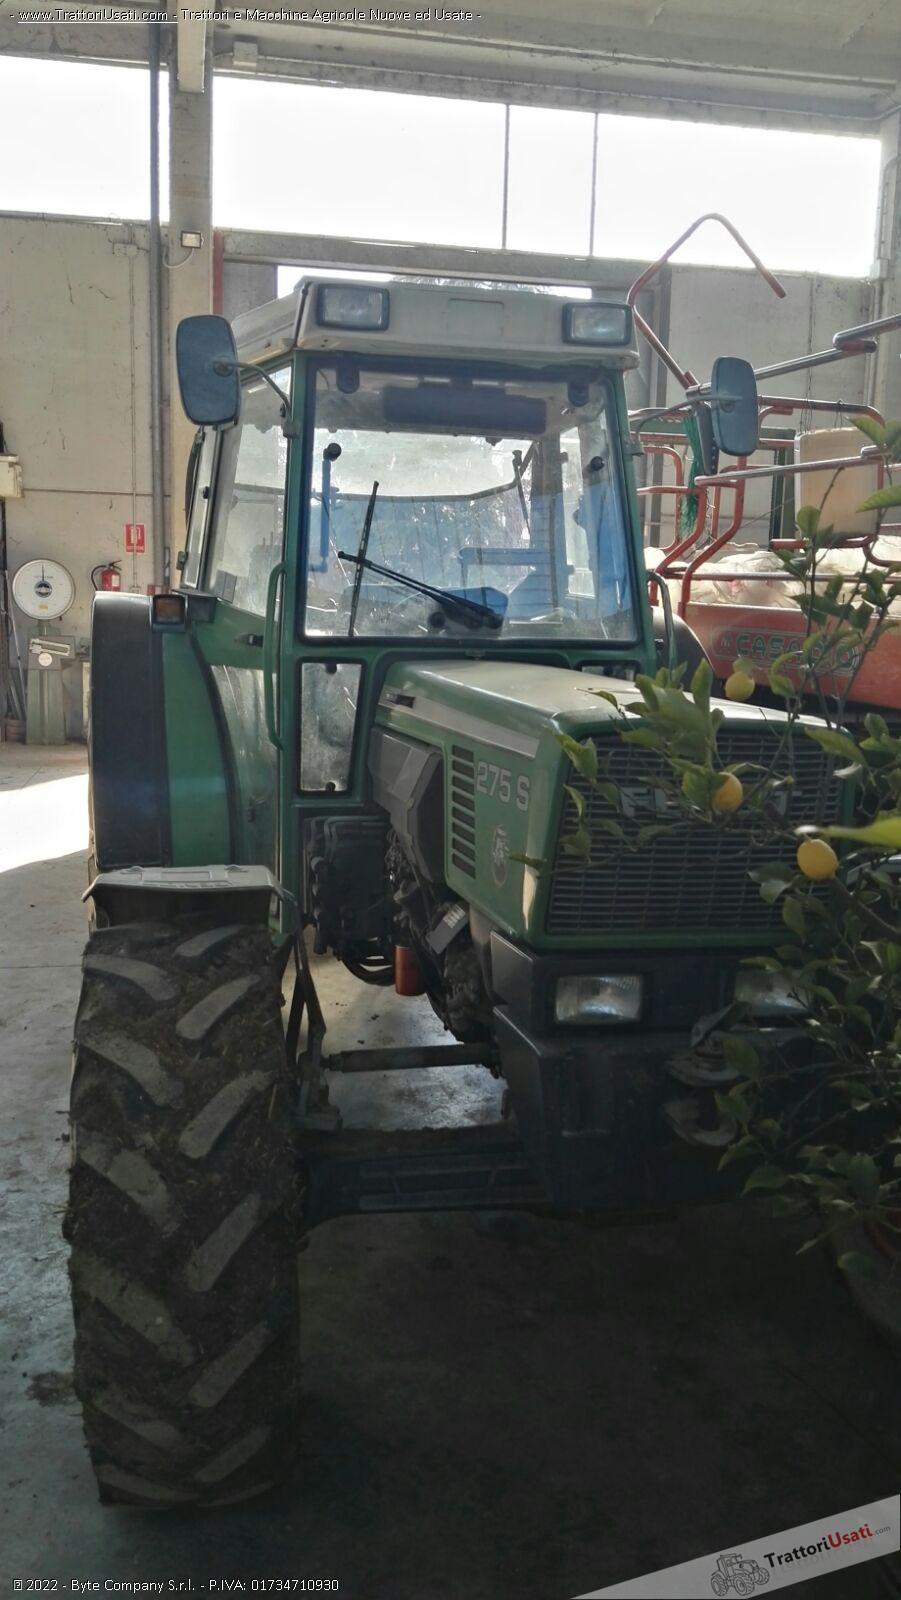 Trattore fendt - 275s 5